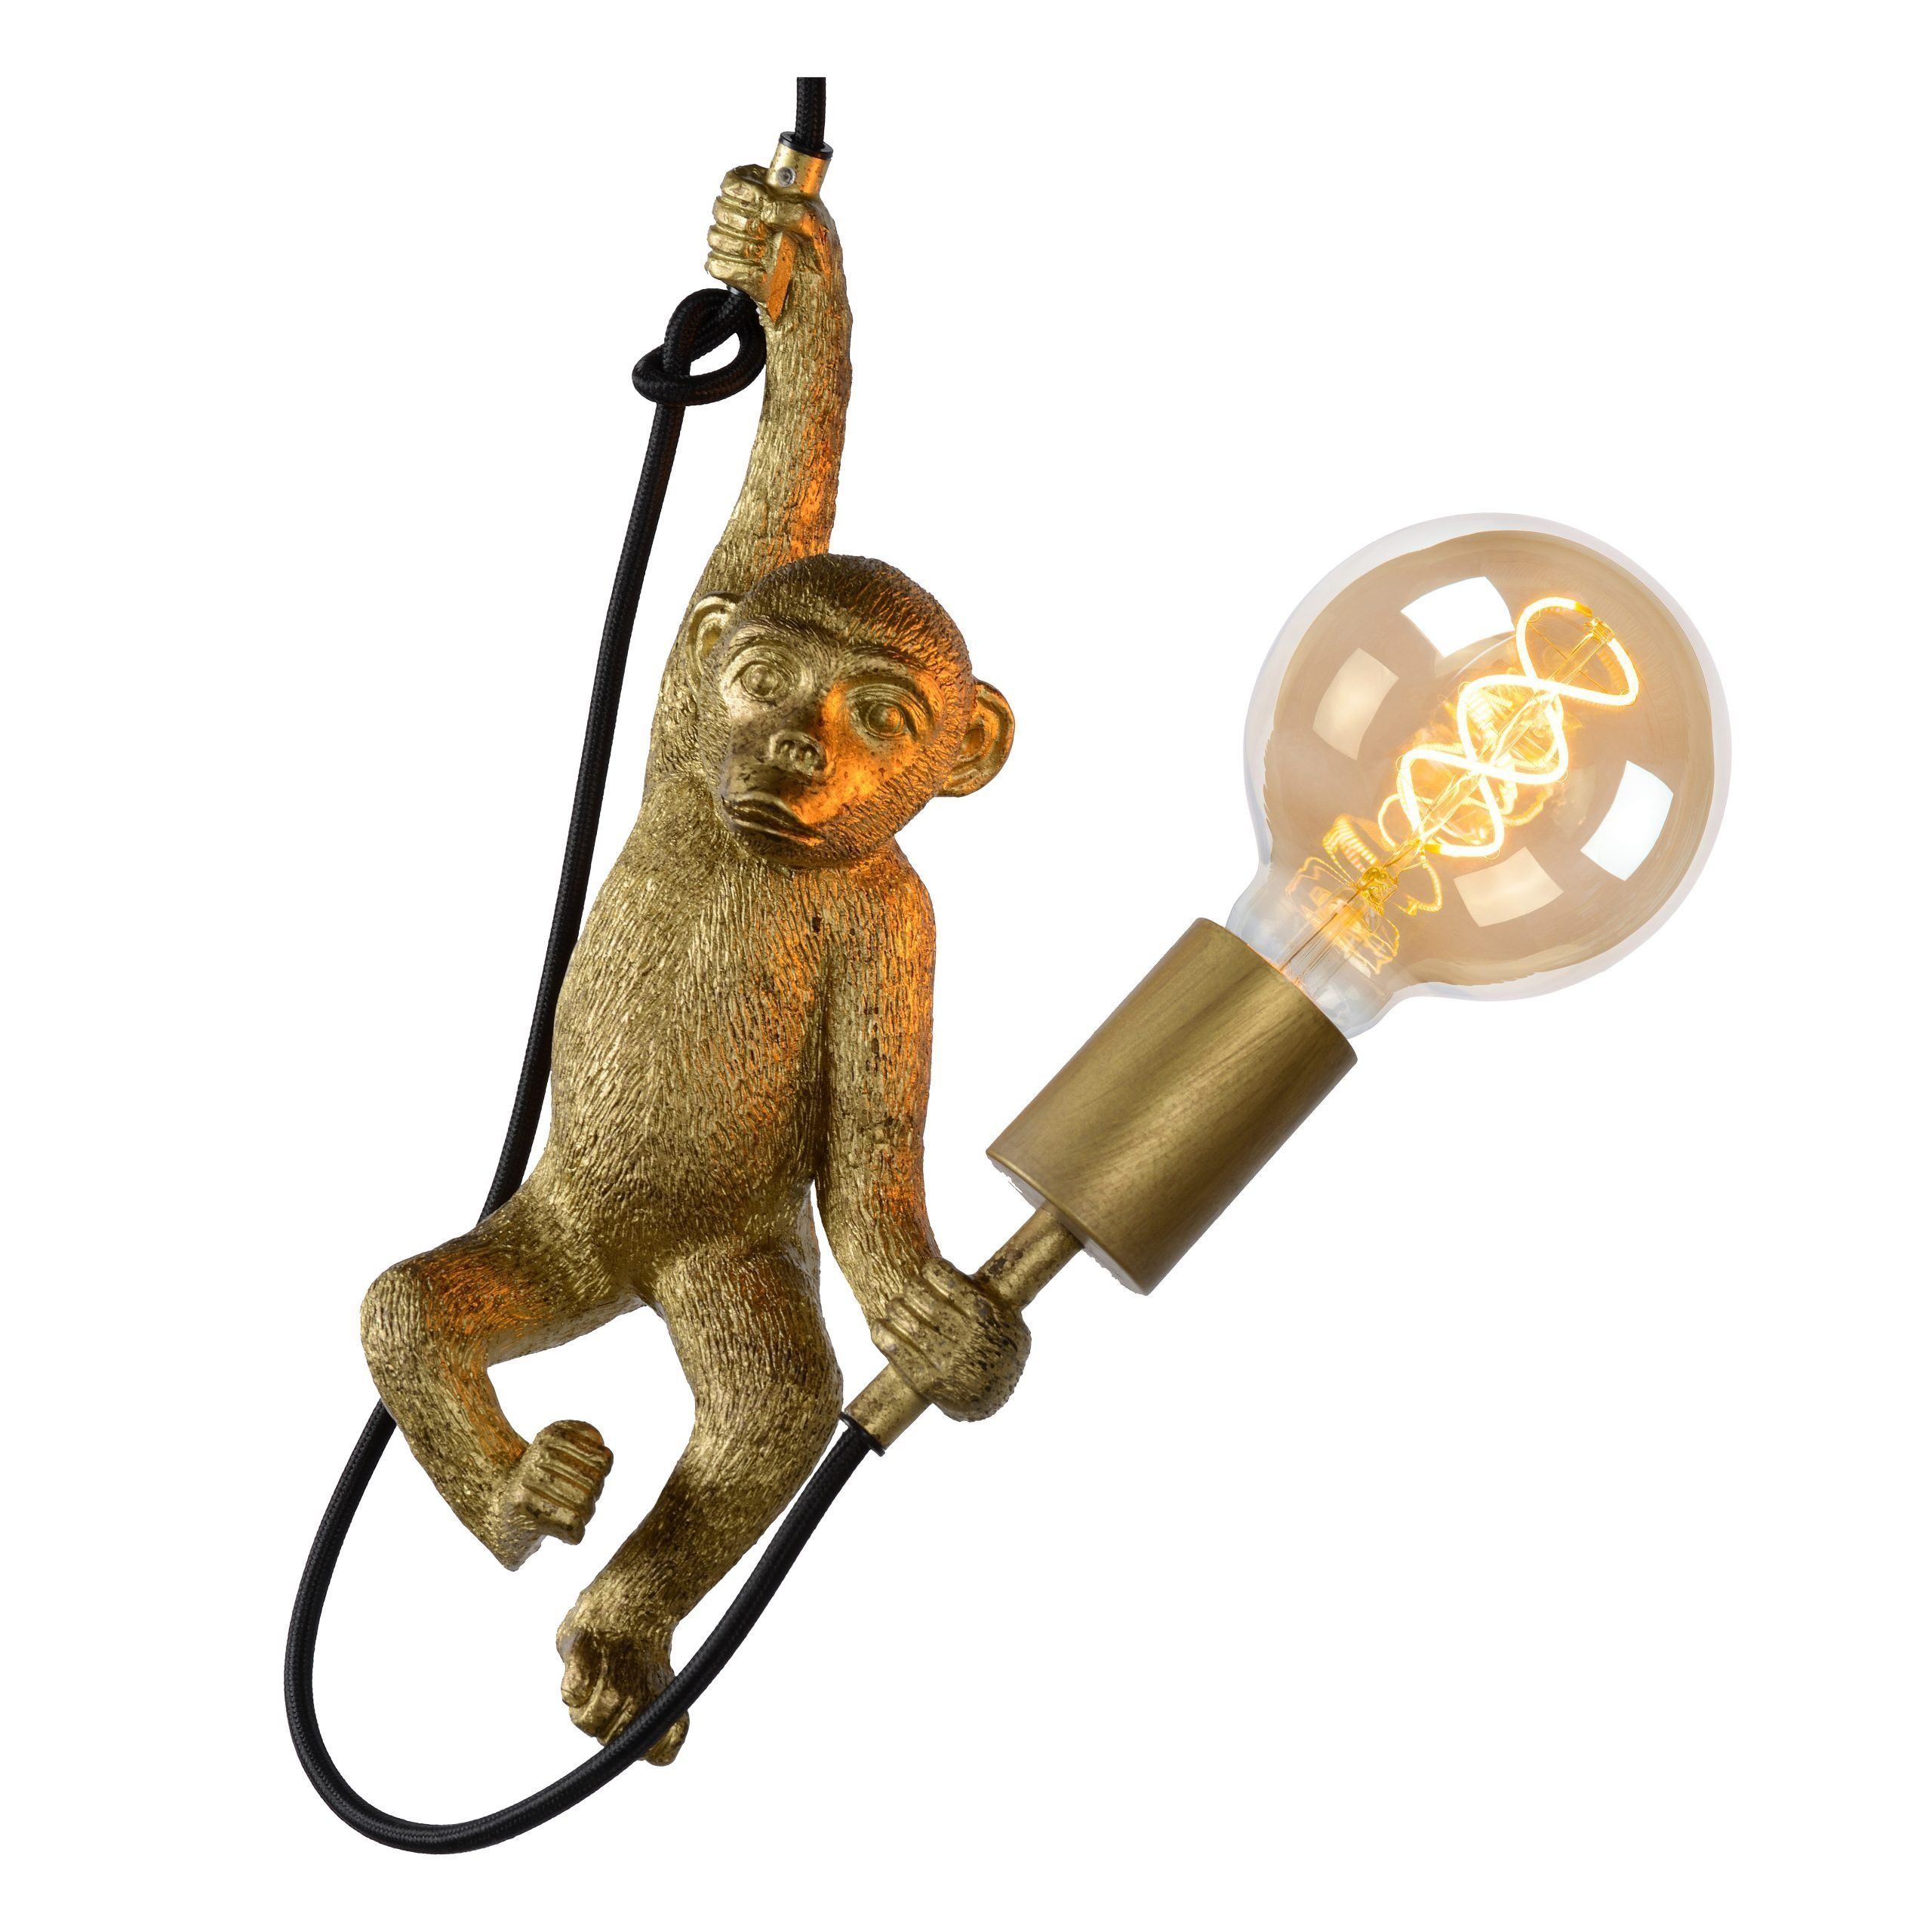 Hanglamp Lucide Chimp